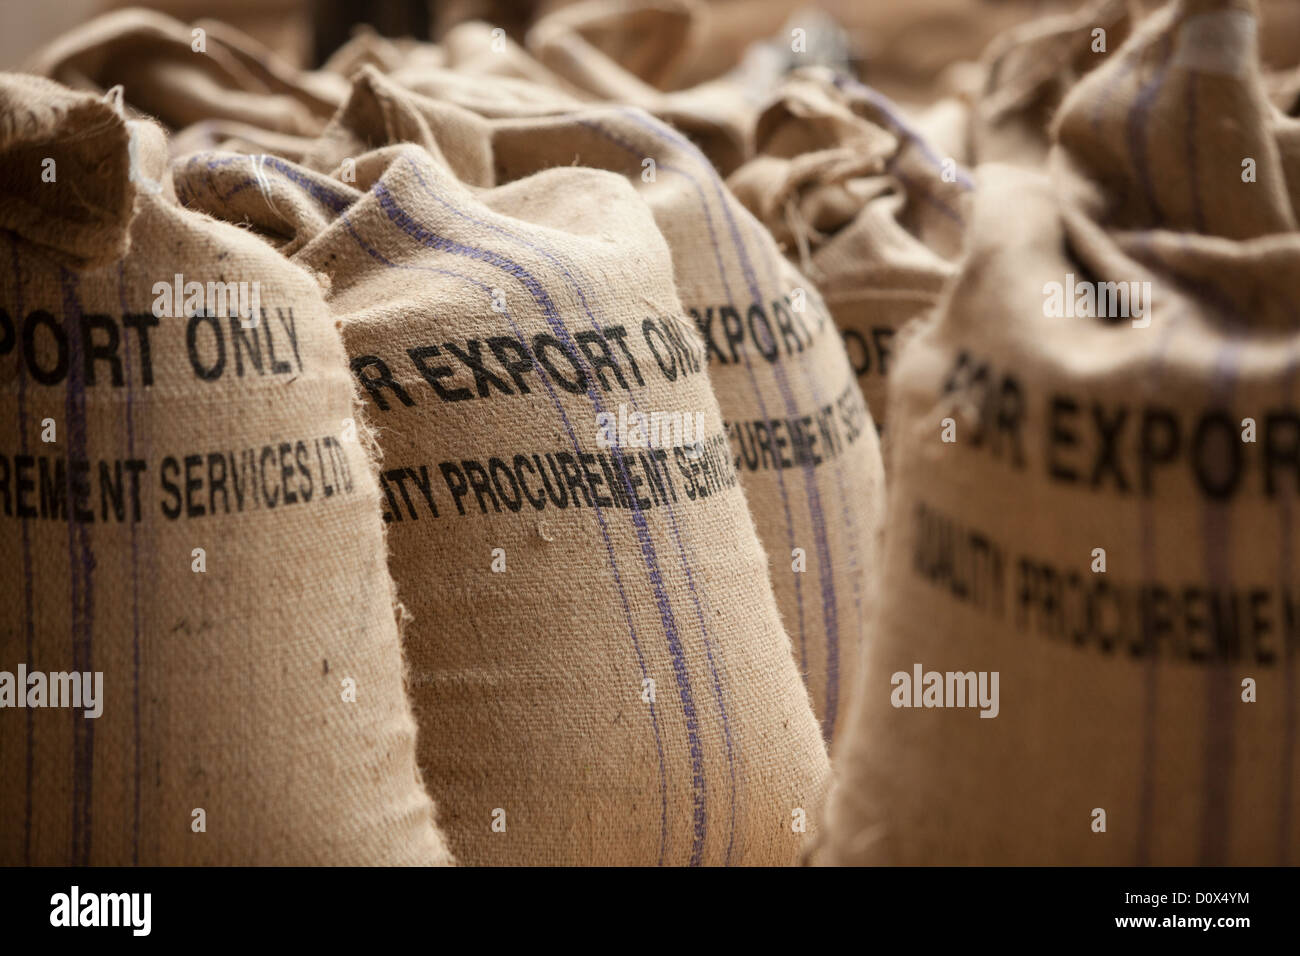 Bags of coffee beans are ready for export at a warehouse in Kampala, Uganda, East Africa. - Stock Image